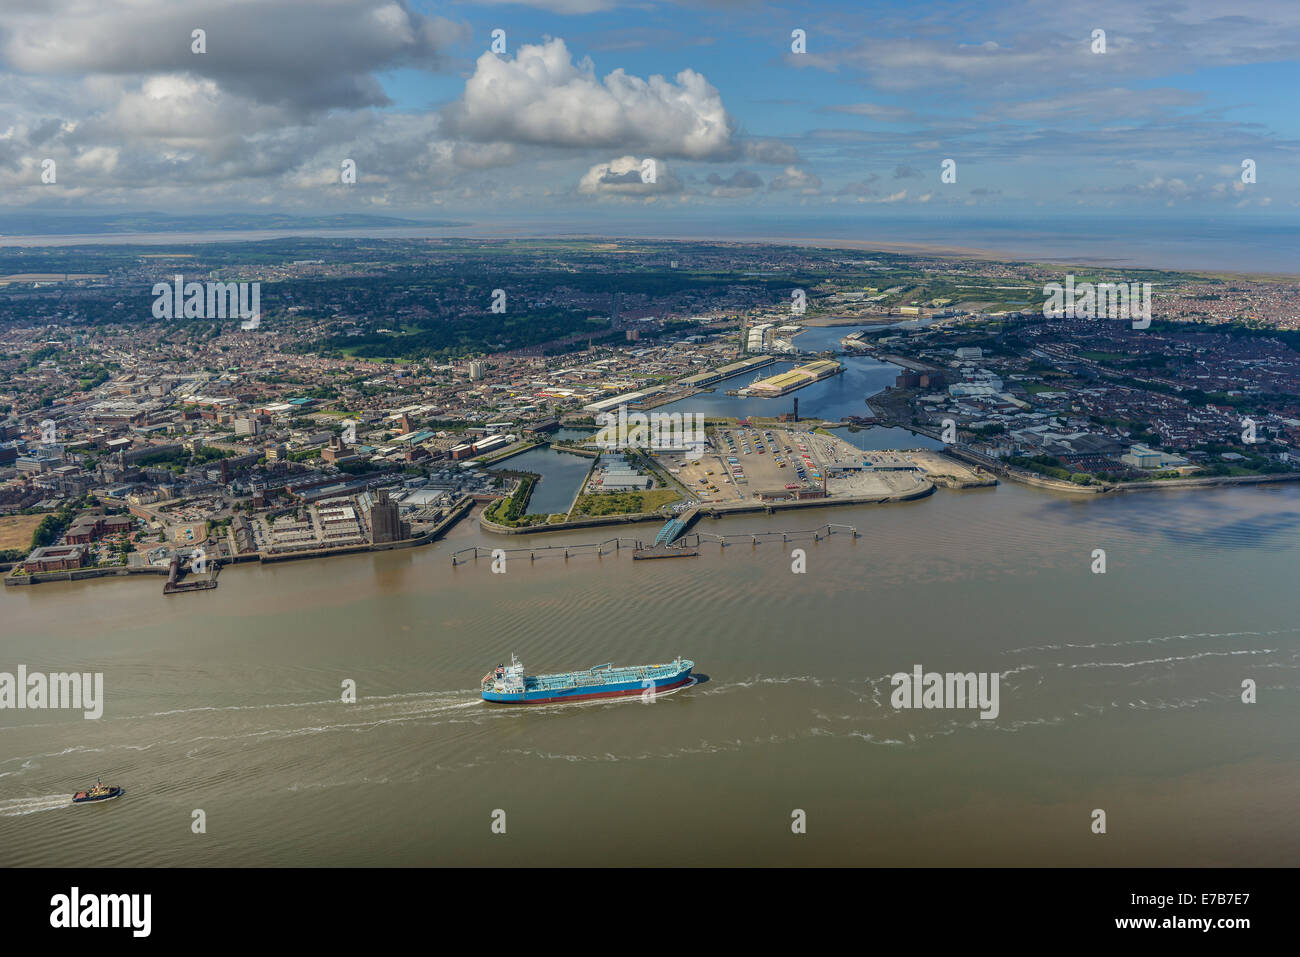 An aerial view across the Mersey showing Birkenhead and beyond that, the North Wales Coast. - Stock Image